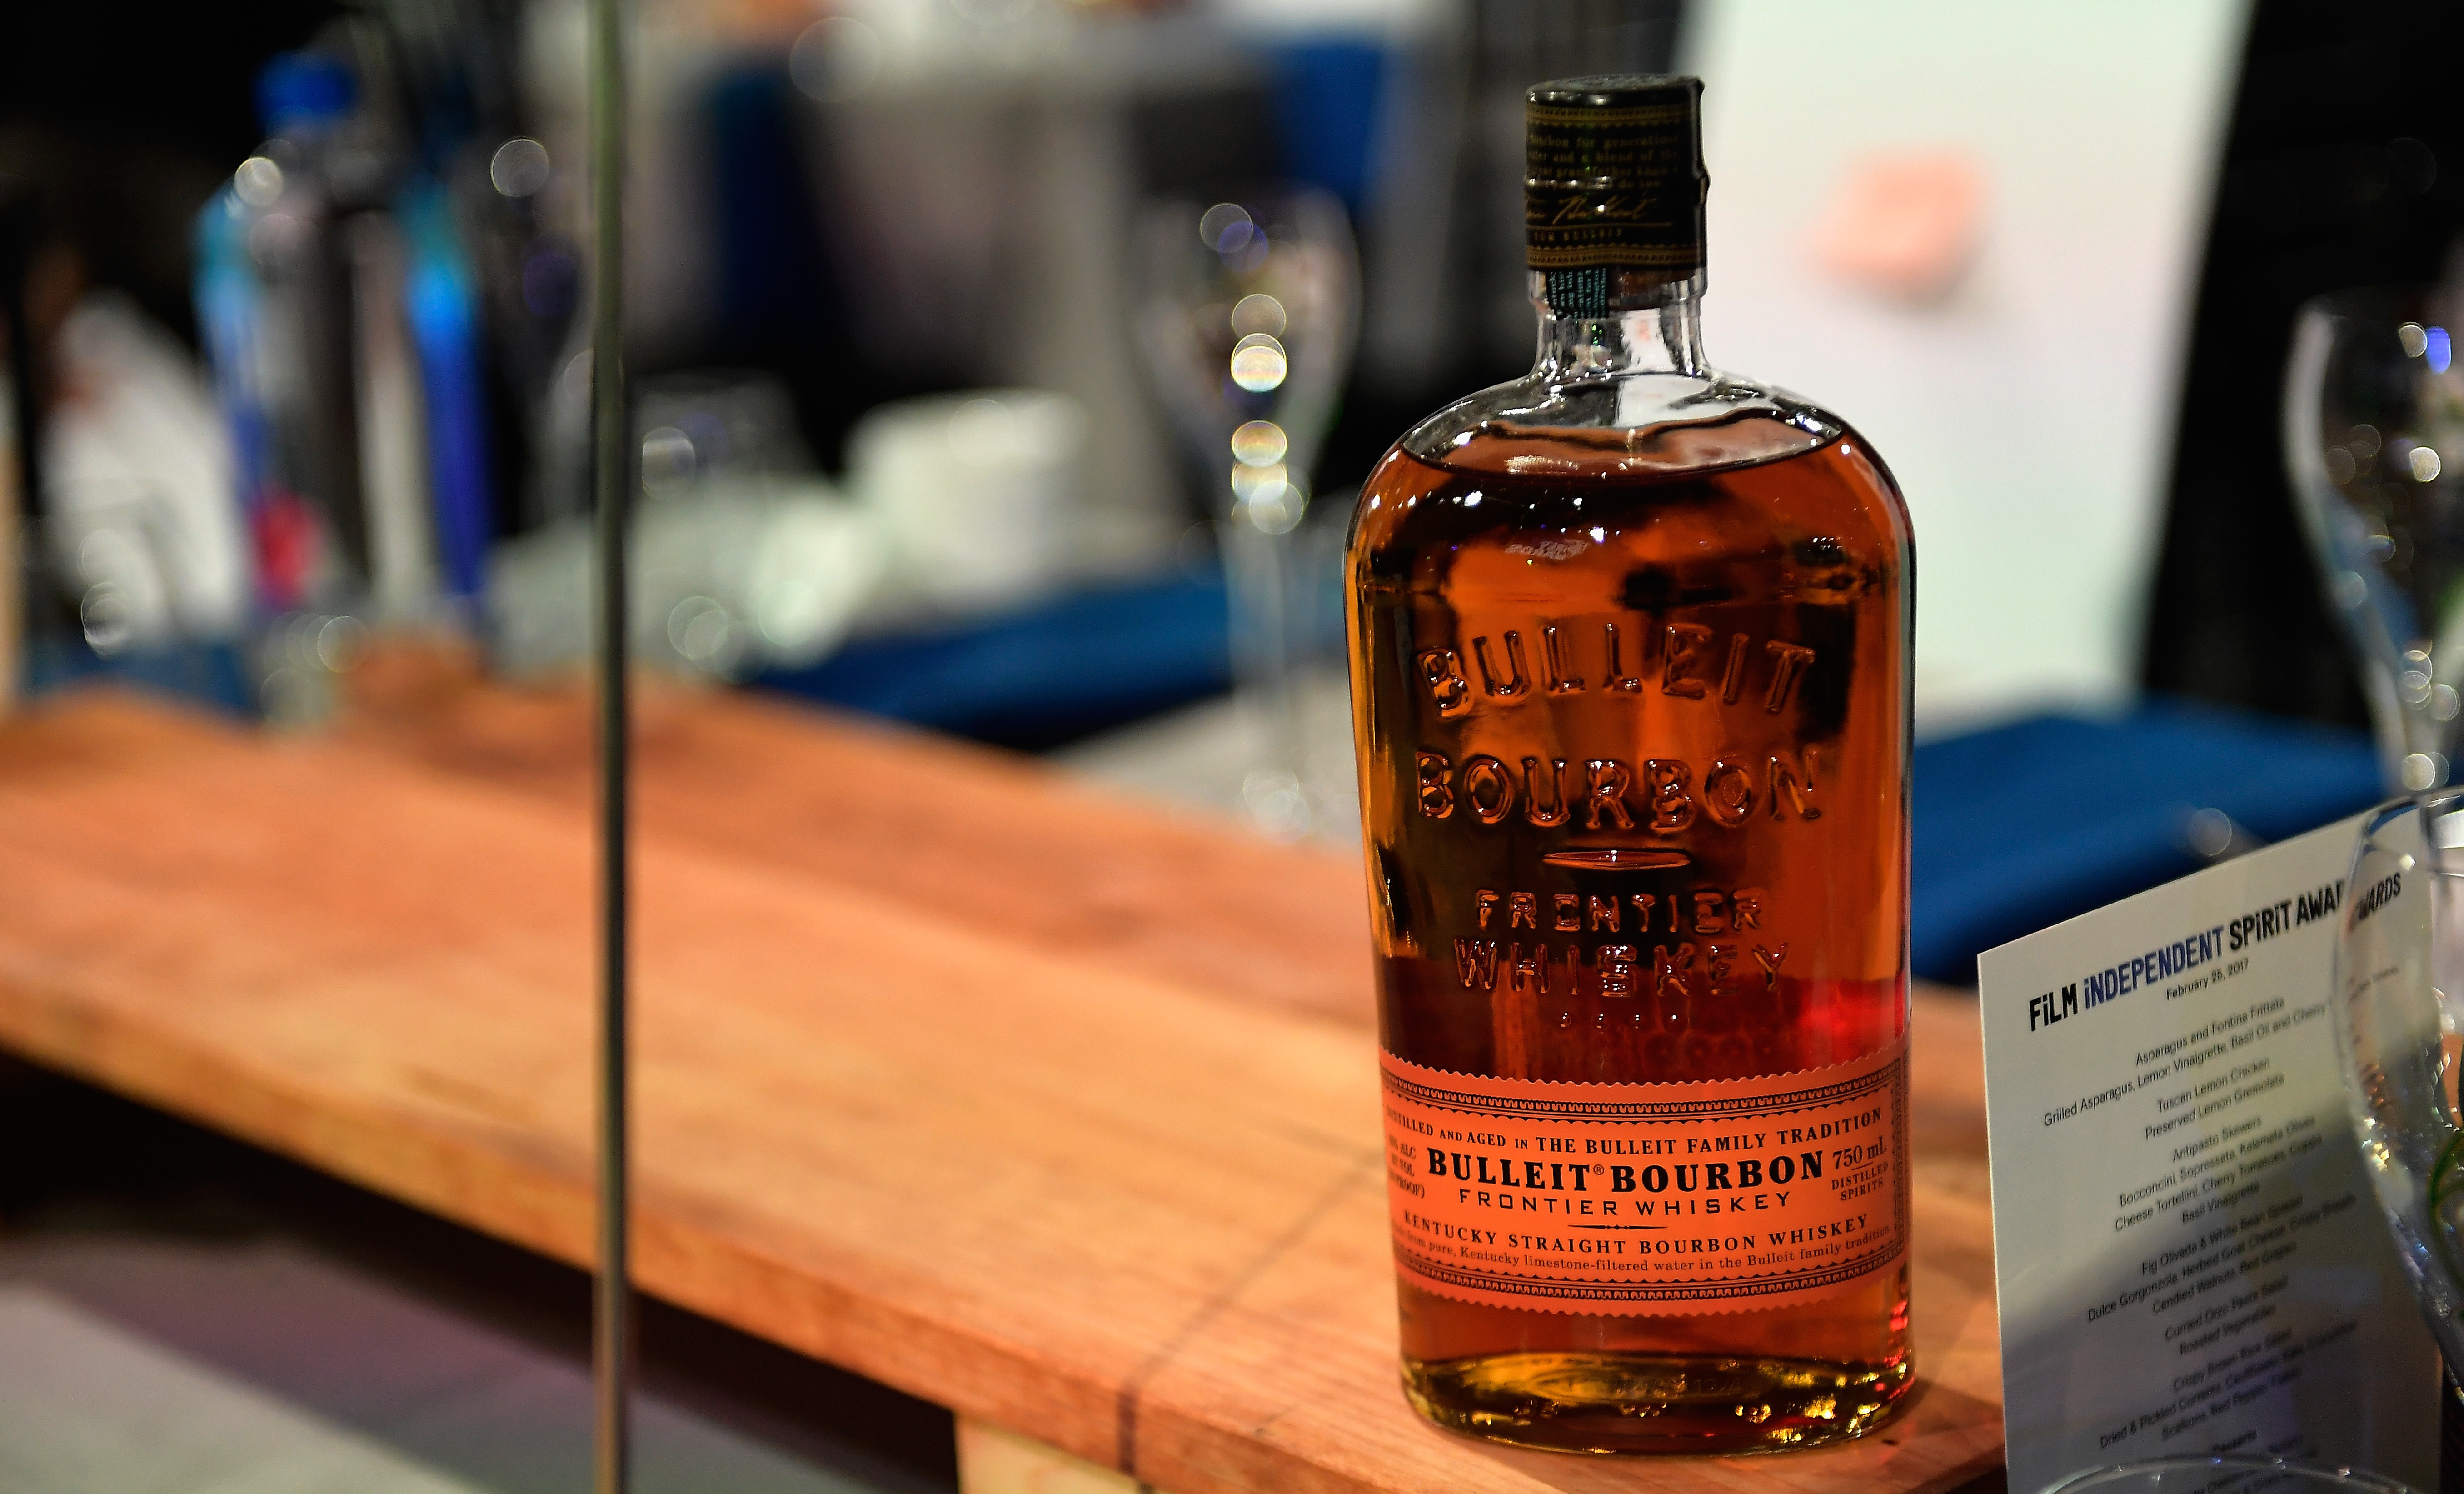 A bottle of Bulleit Bourbon is displayed at an awards ceremony in February in Santa Monica, Calif. American distillers say they are concerned about potential EU tariffs against bourbon, if the U.S. imposes a tariff on steel.